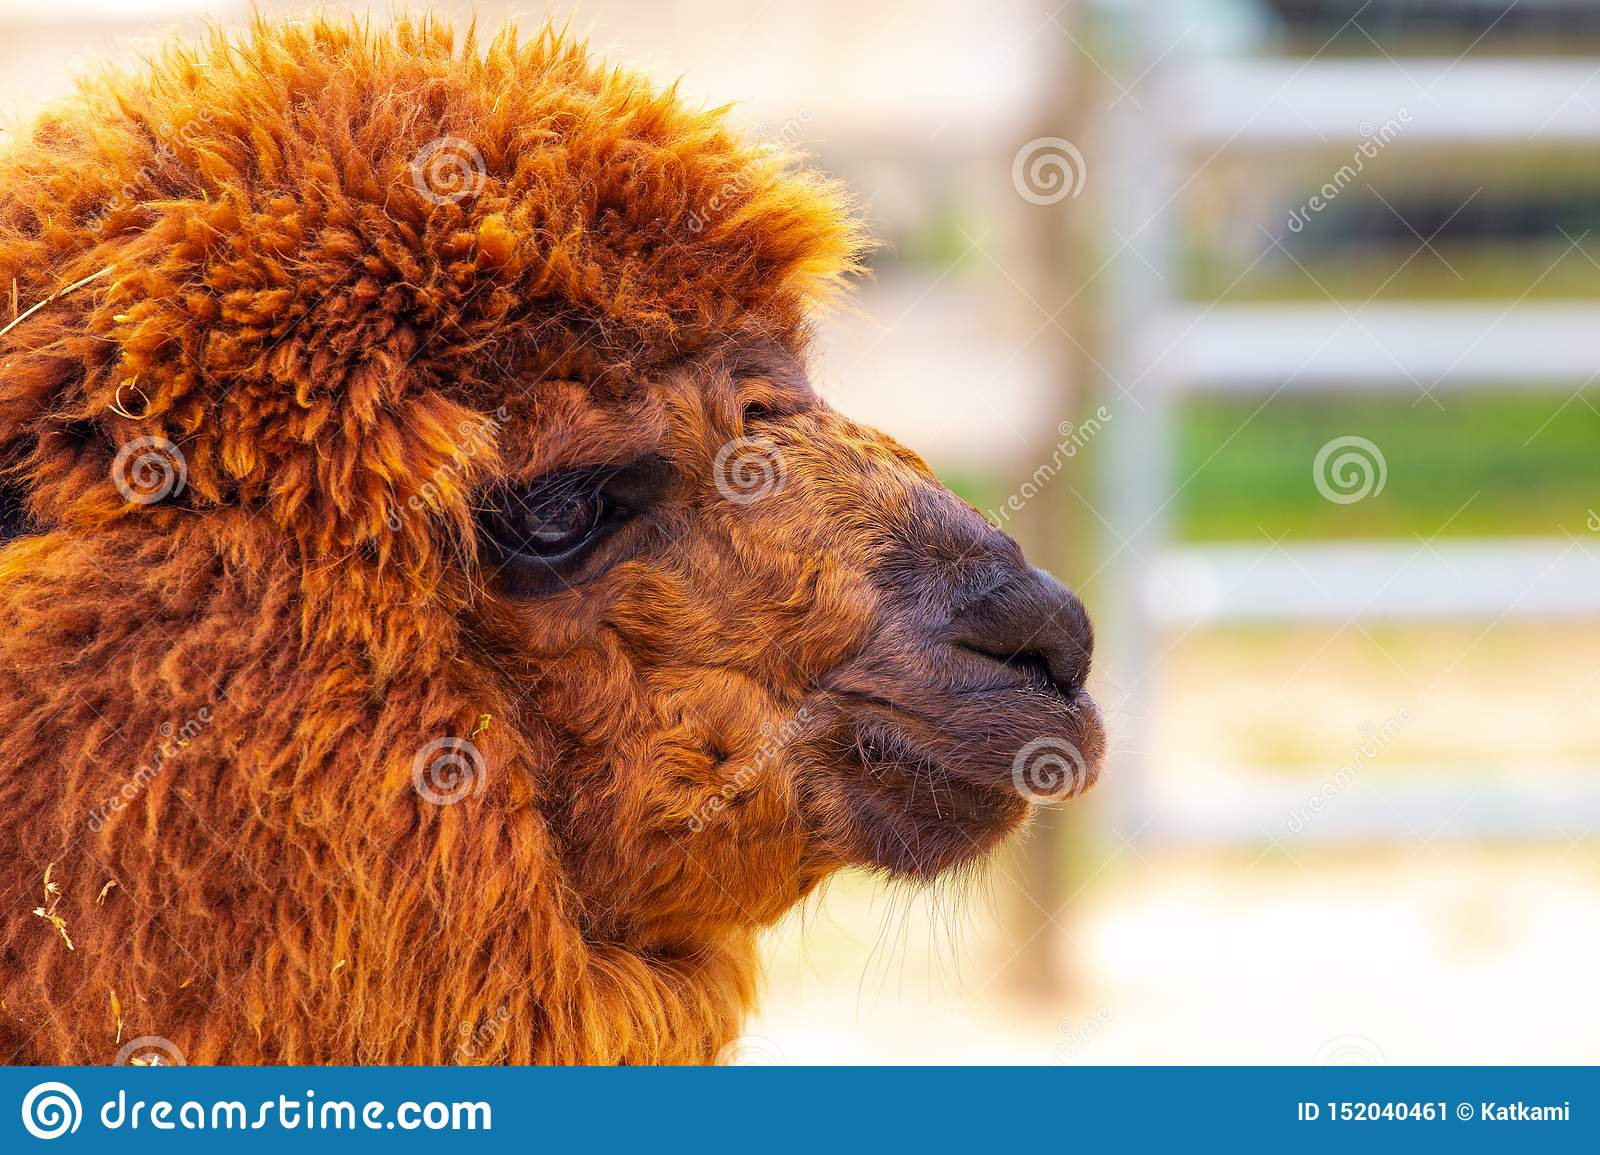 Reddish brown furry alpaca profile with fence in background